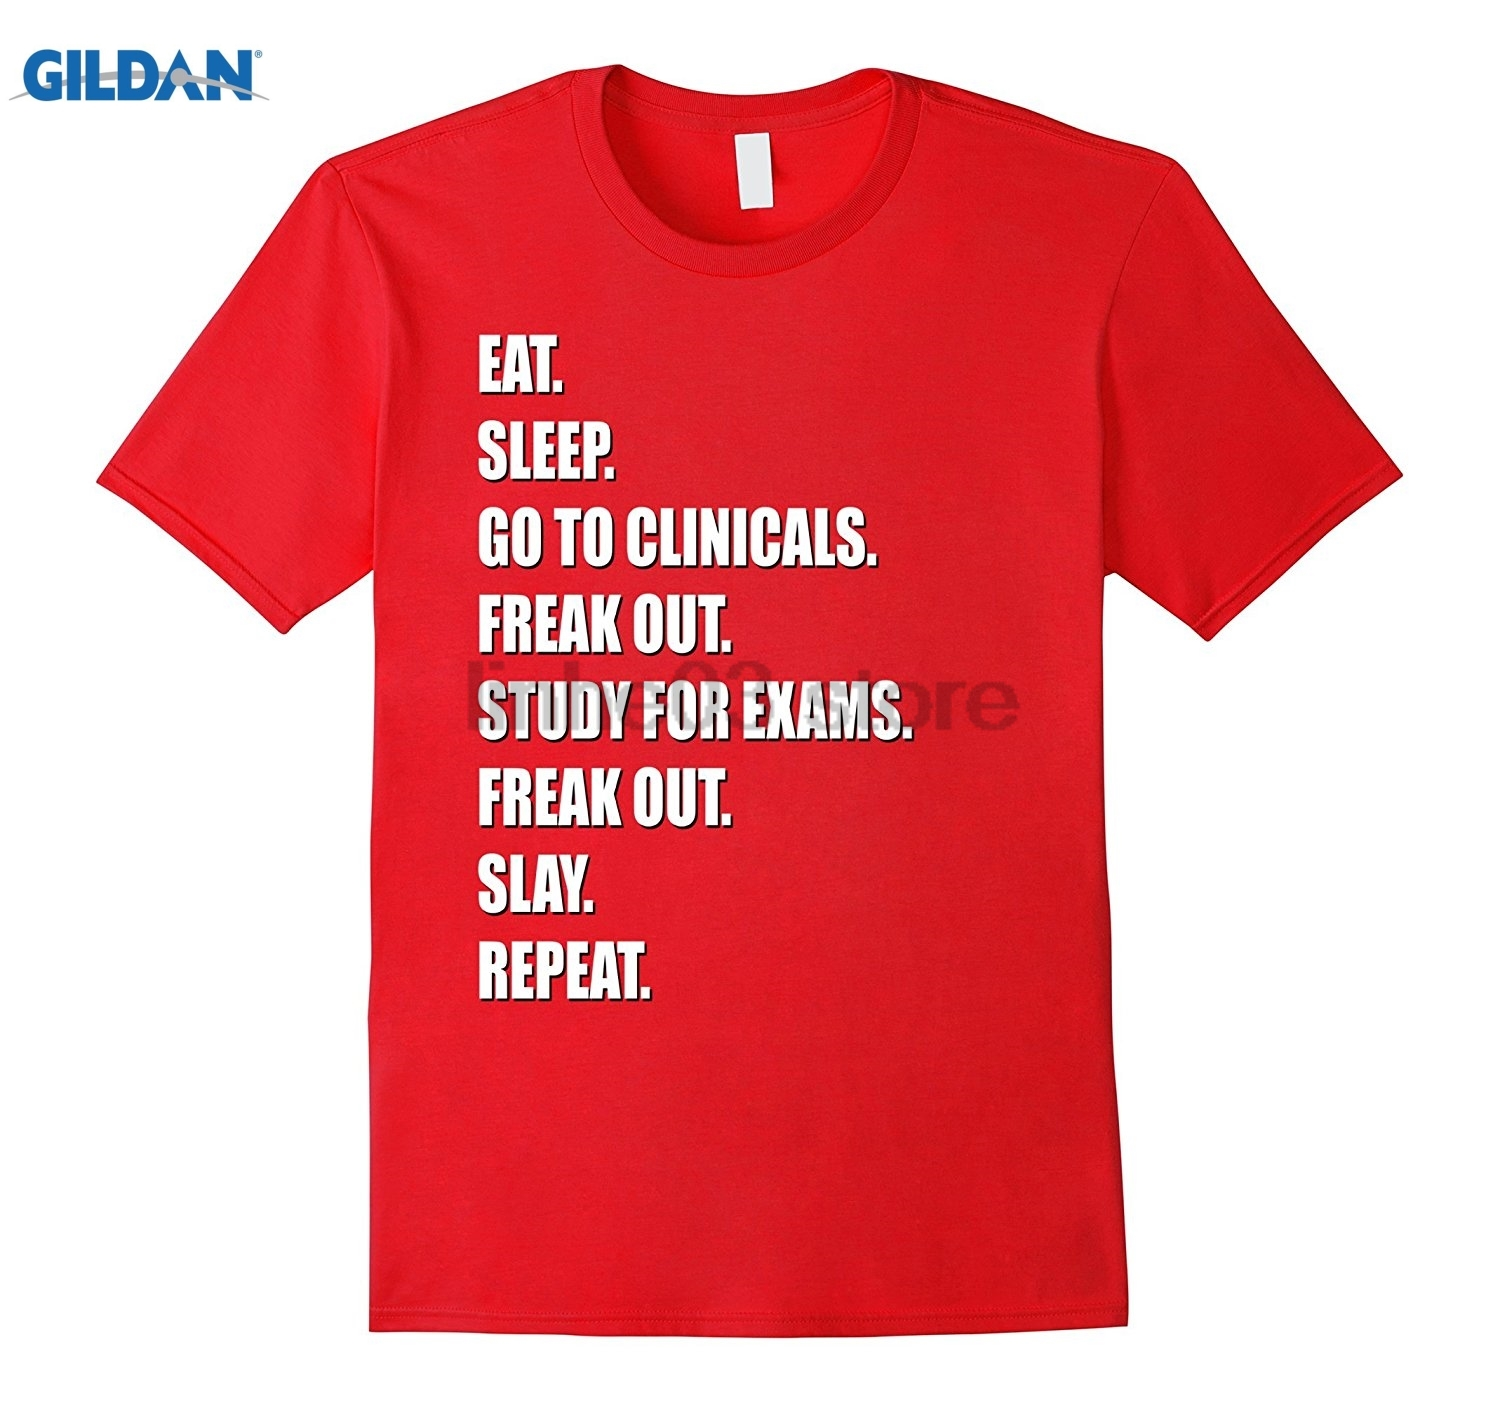 GILDAN Funny Nurse Shirt Slay RN LPN Clinicals Nursing School Dress female T-shirt